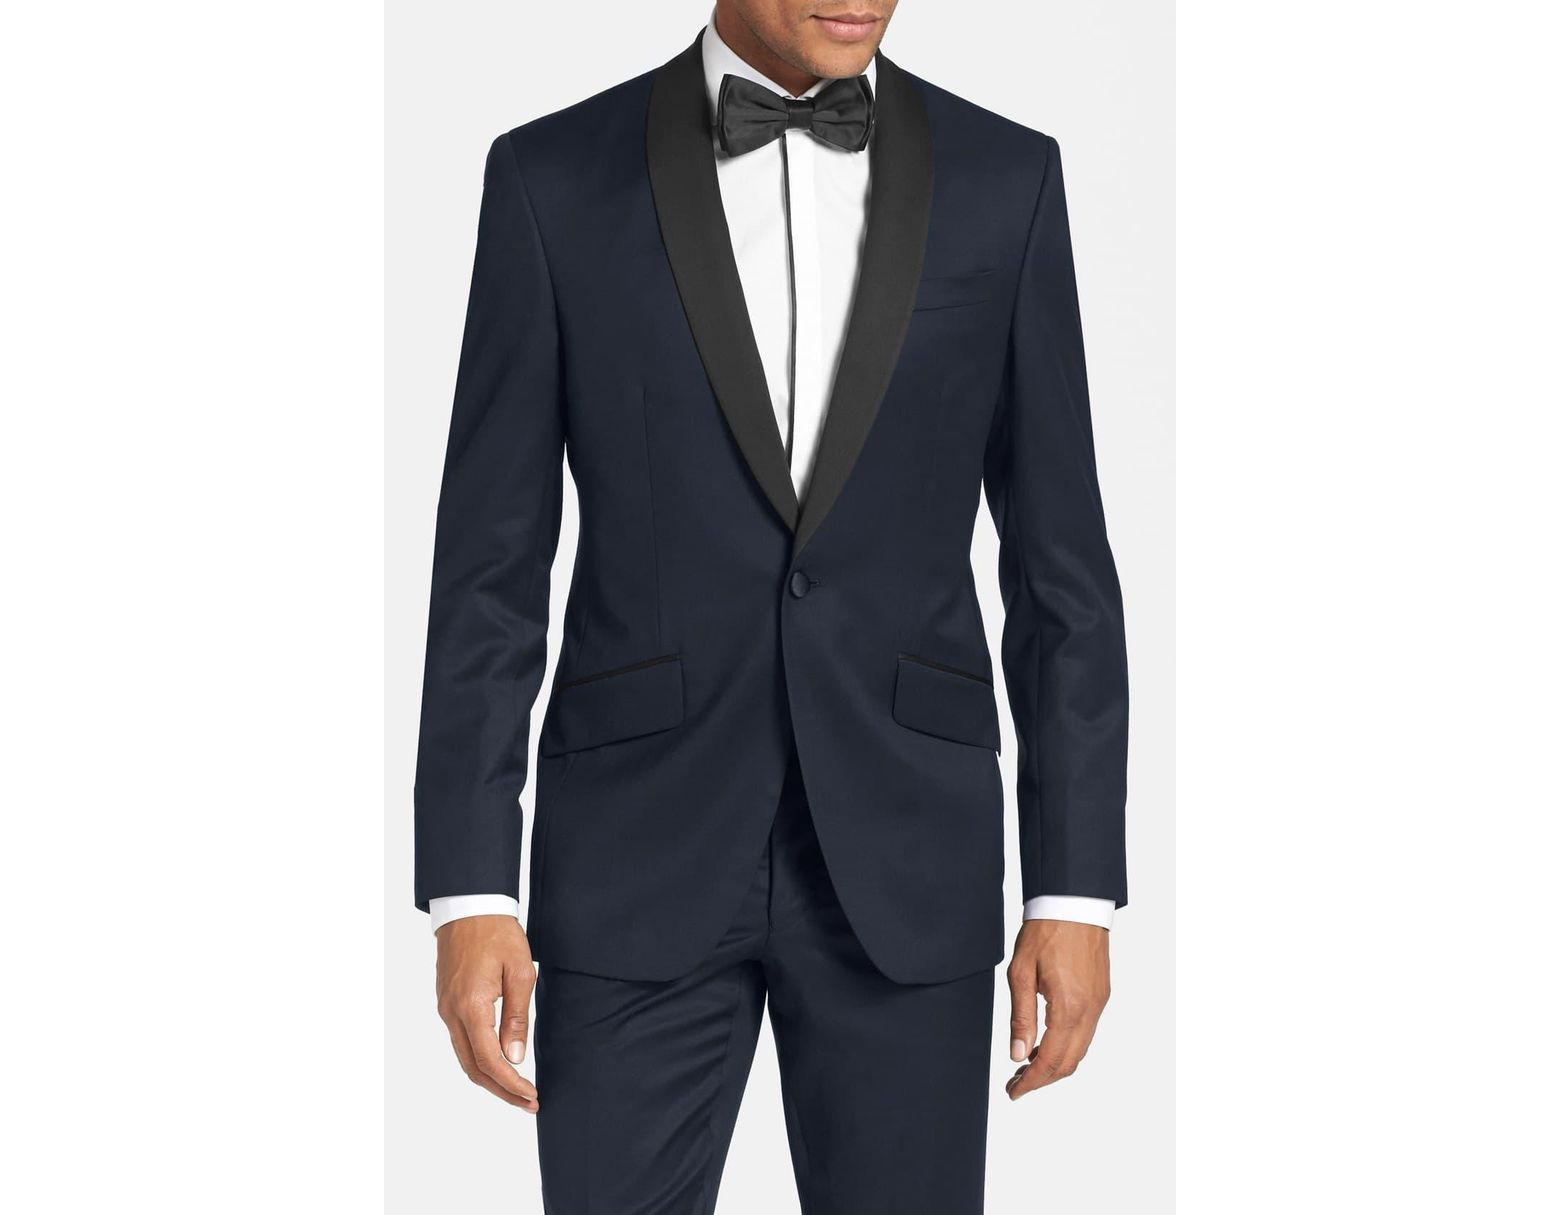 cdb9de455459eb Ted Baker Josh Trim Fit Navy Shawl Lapel Tuxedo in Black for Men - Lyst